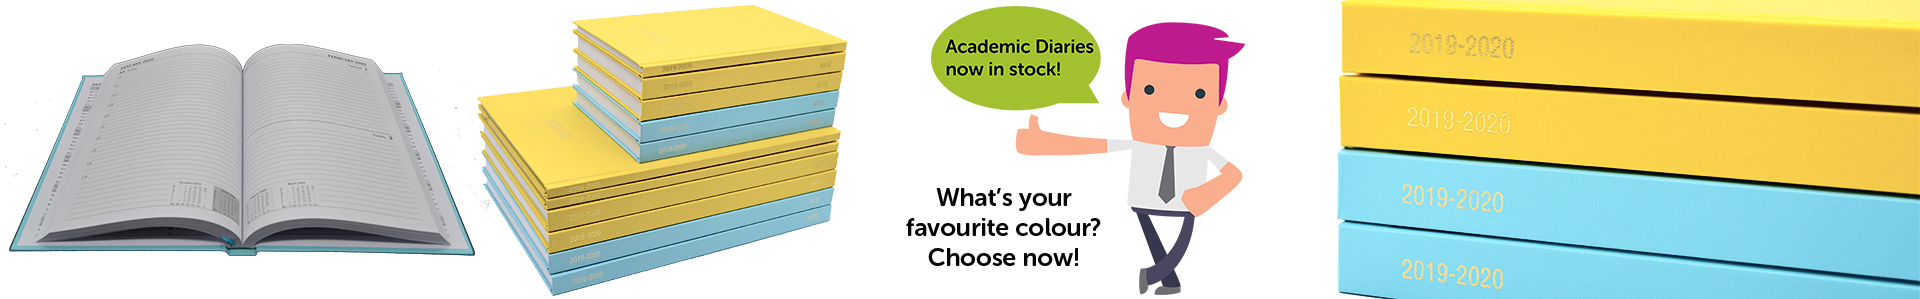 Academic diaries in lots of colour options